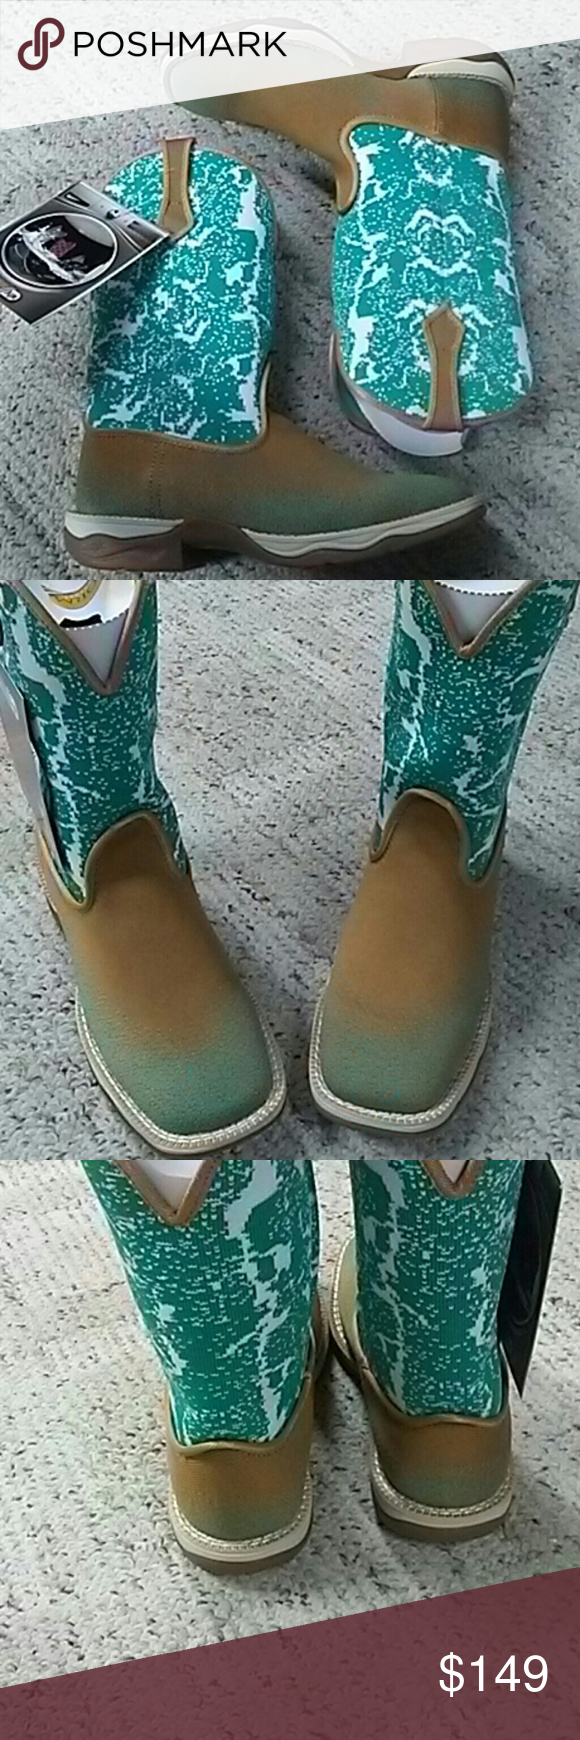 New Machine washable boots These are fabulous...fit comfortable like a tennis shoe and a slipper..yes you can ride in these.... Shoes